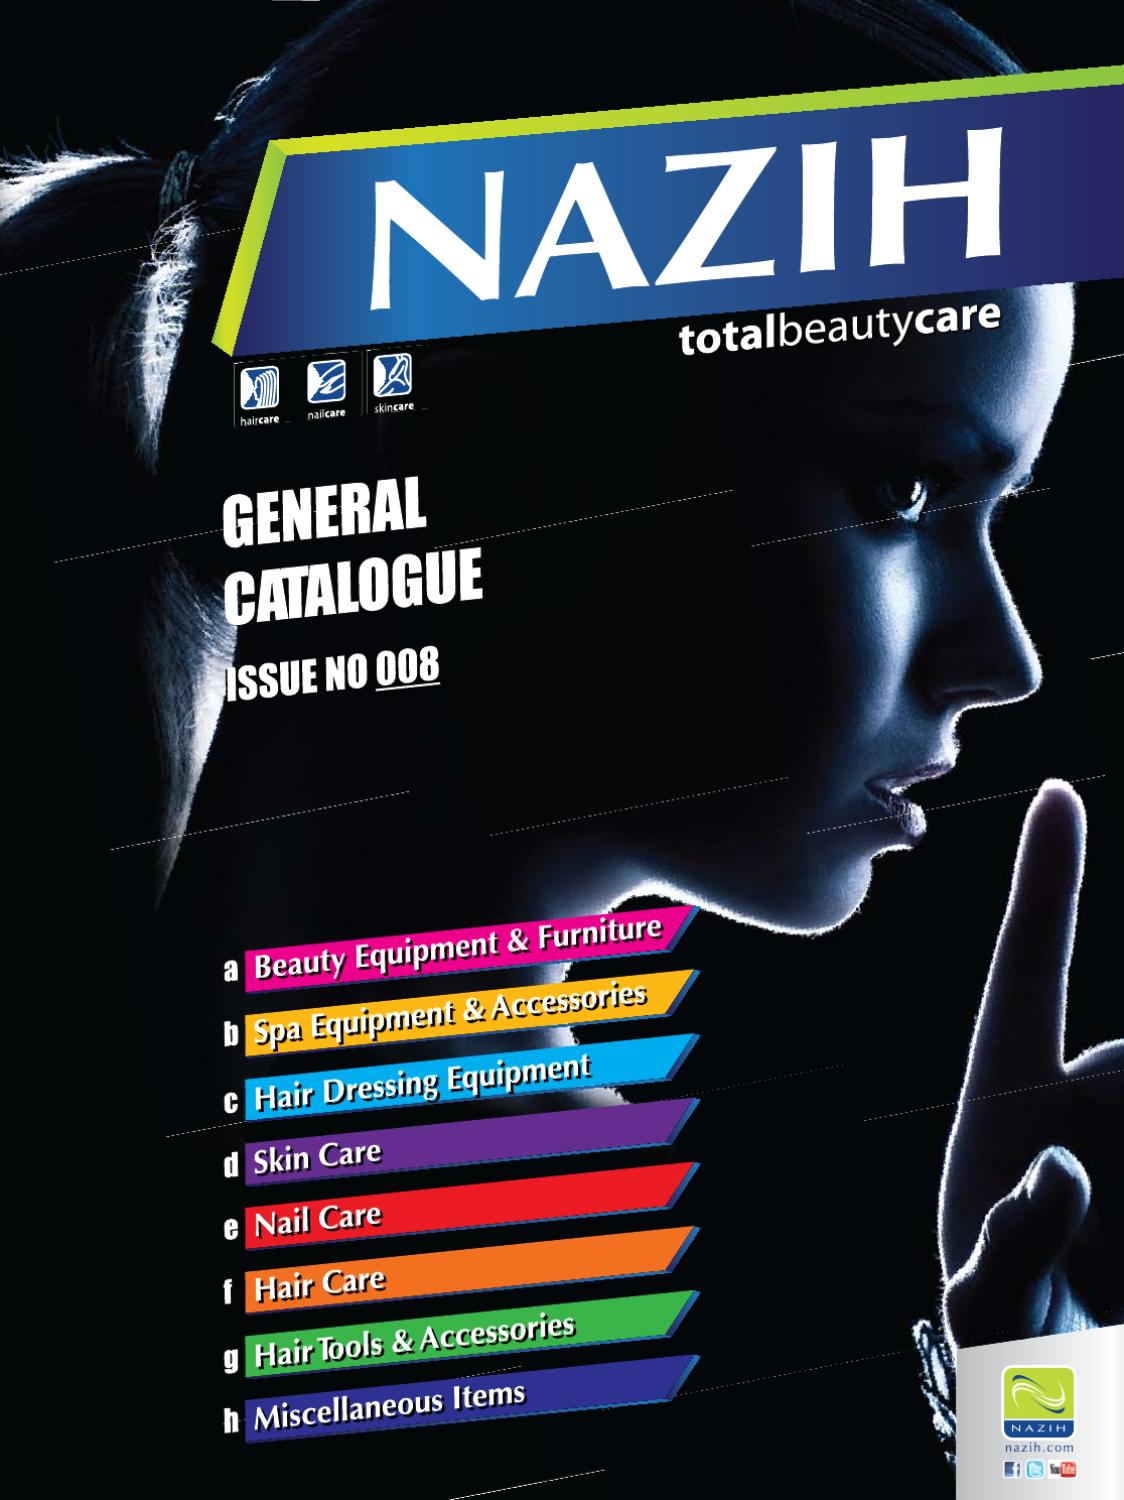 137304b2a Nazih Catalogue 2012 by Nazih Cosmetics - issuu